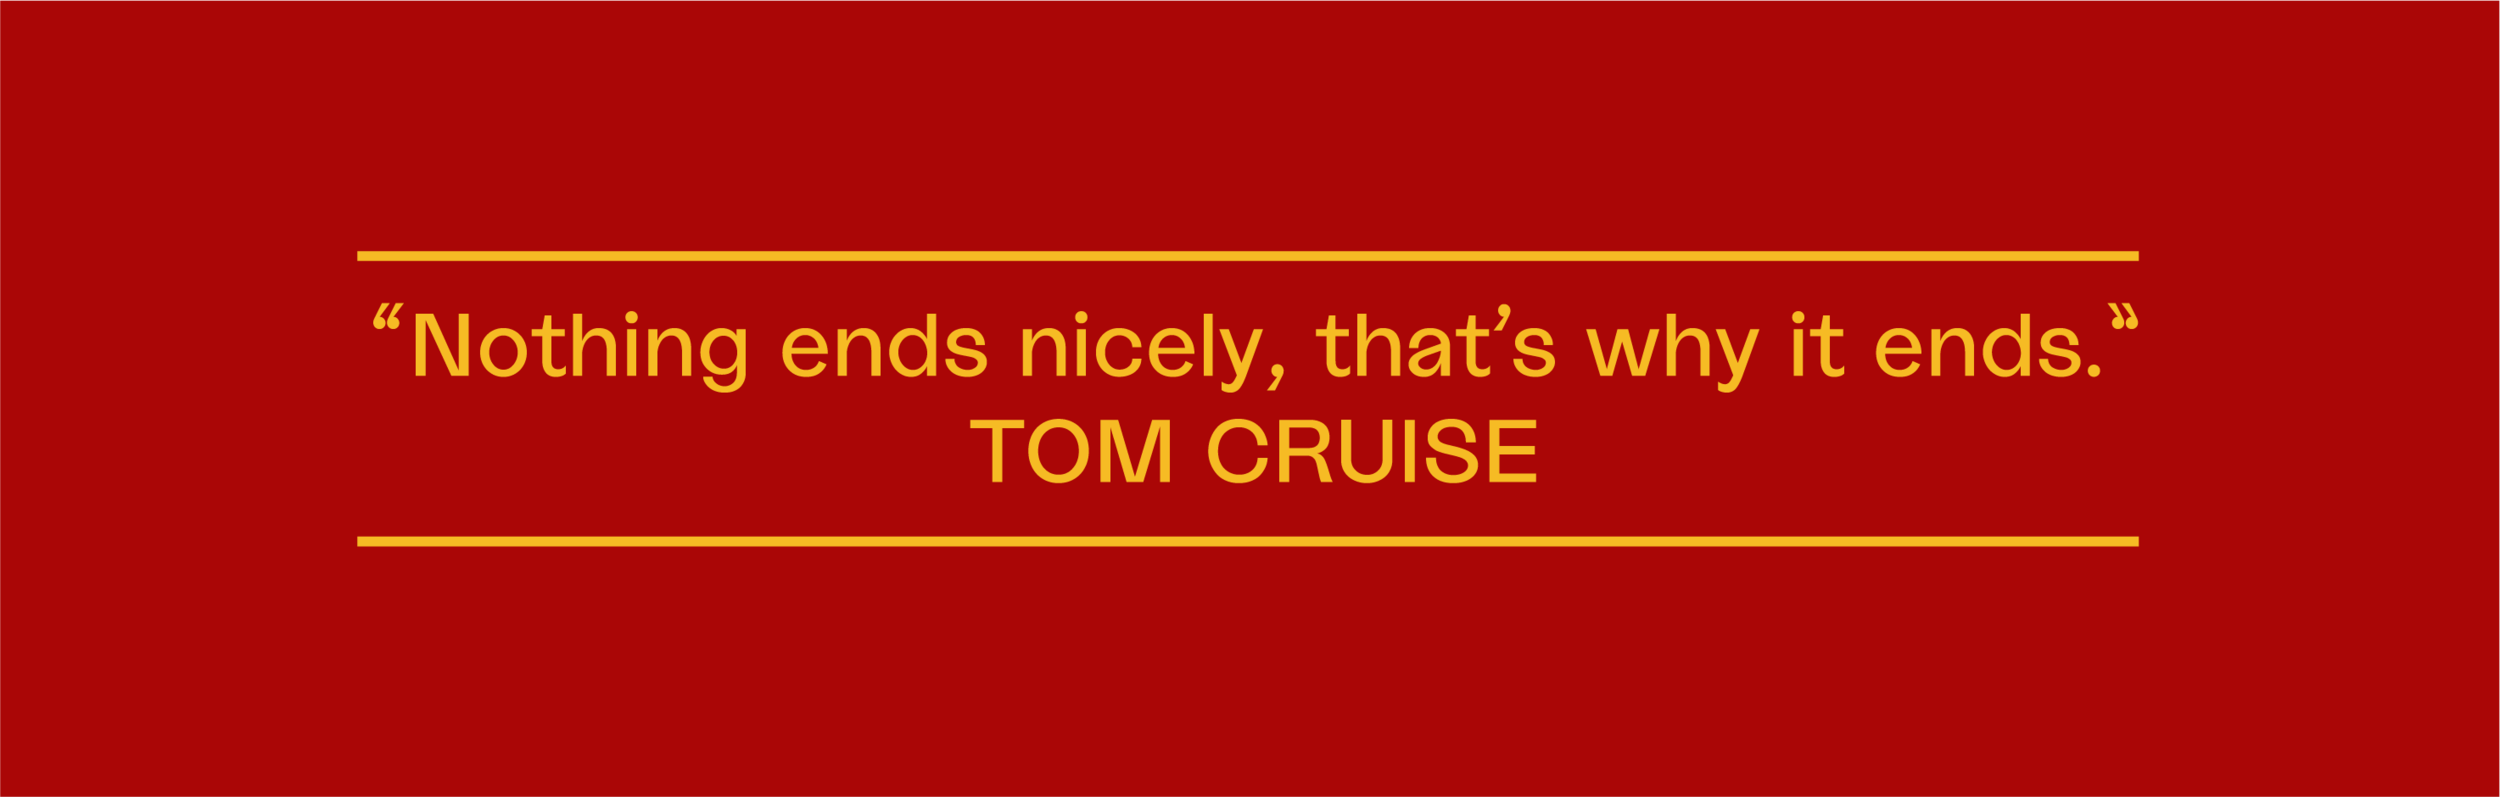 Cruise Brews The Label2.png